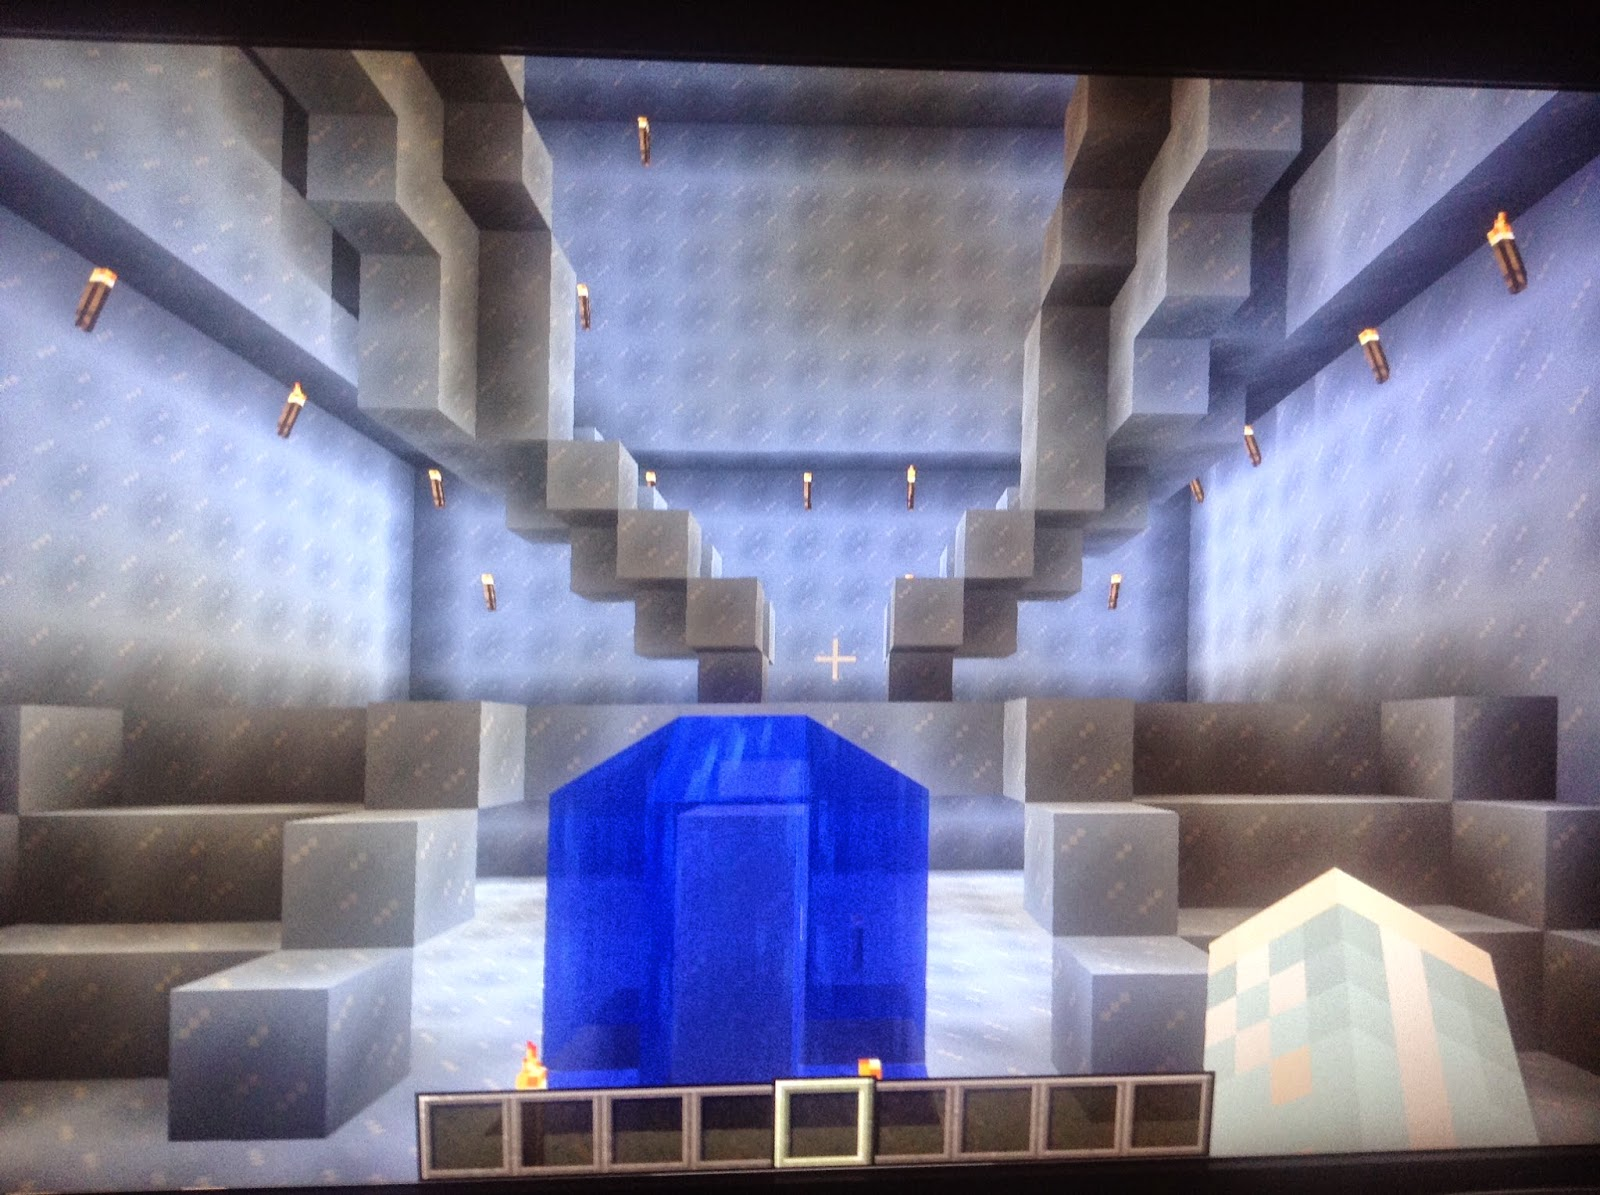 Taryn S Travels My Minecraft Ice Castle I show you how to get ice blocks in minecraft. taryn s travels blogger